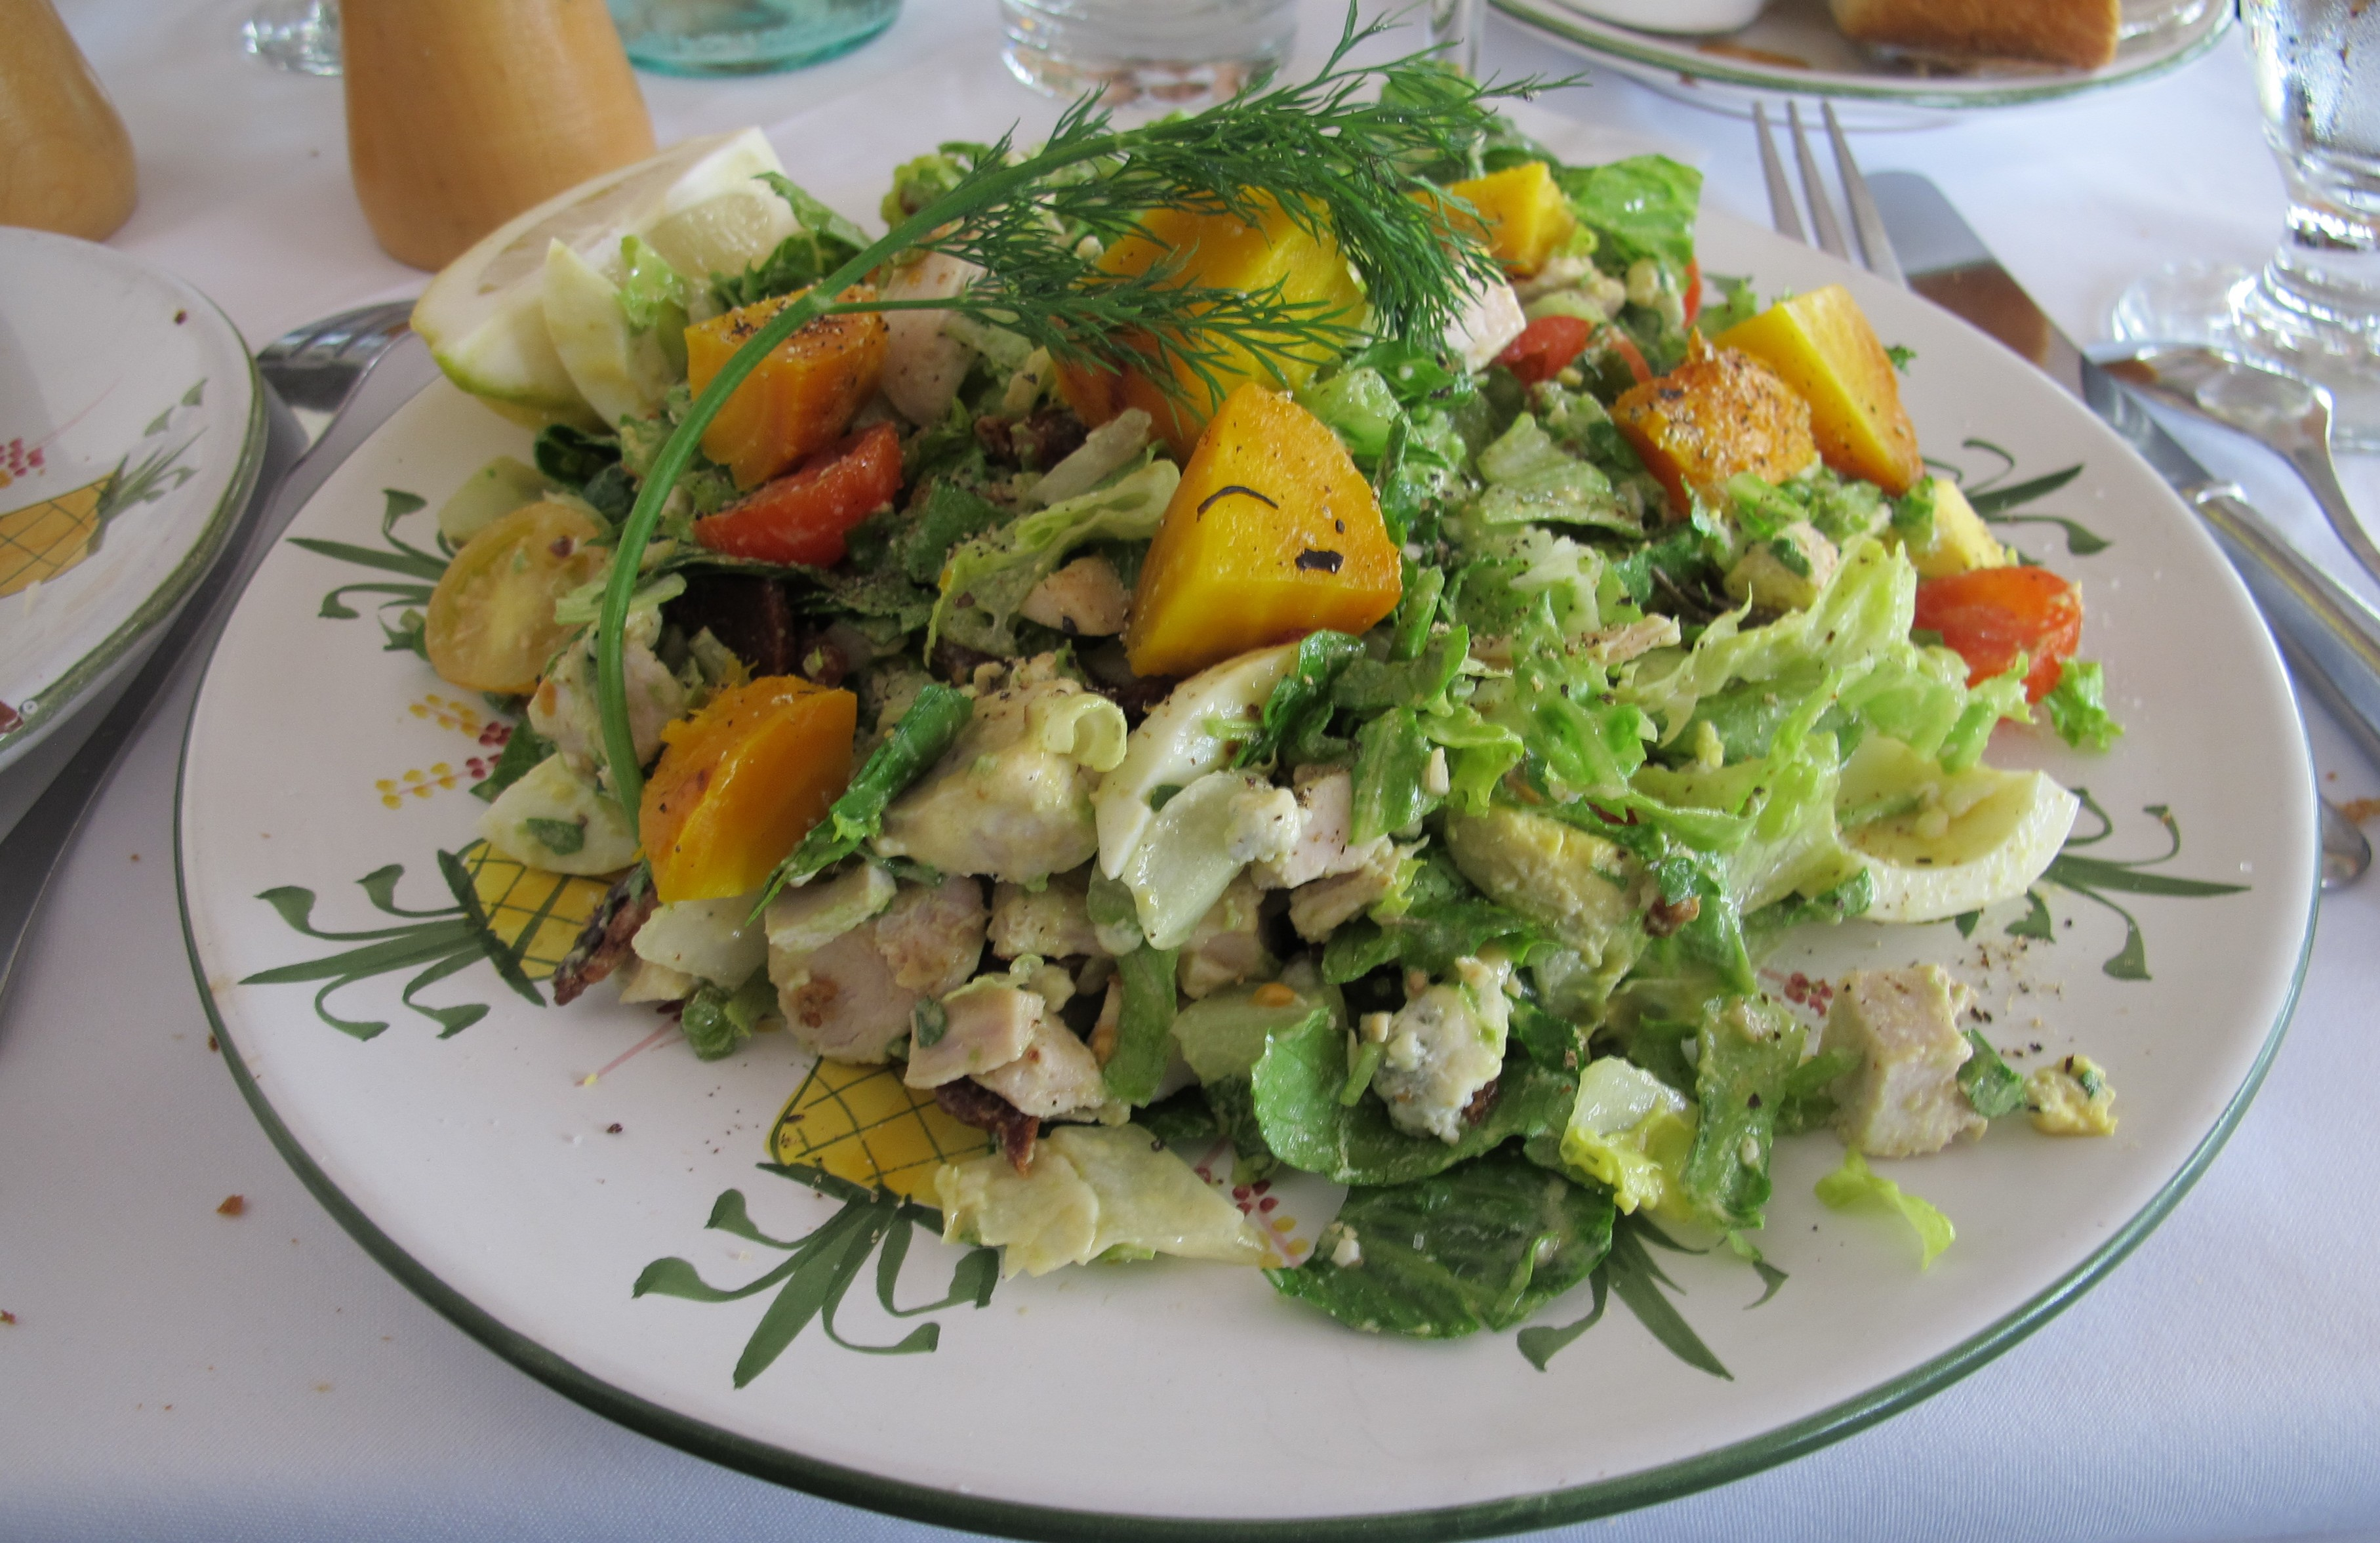 One of the delicious salads